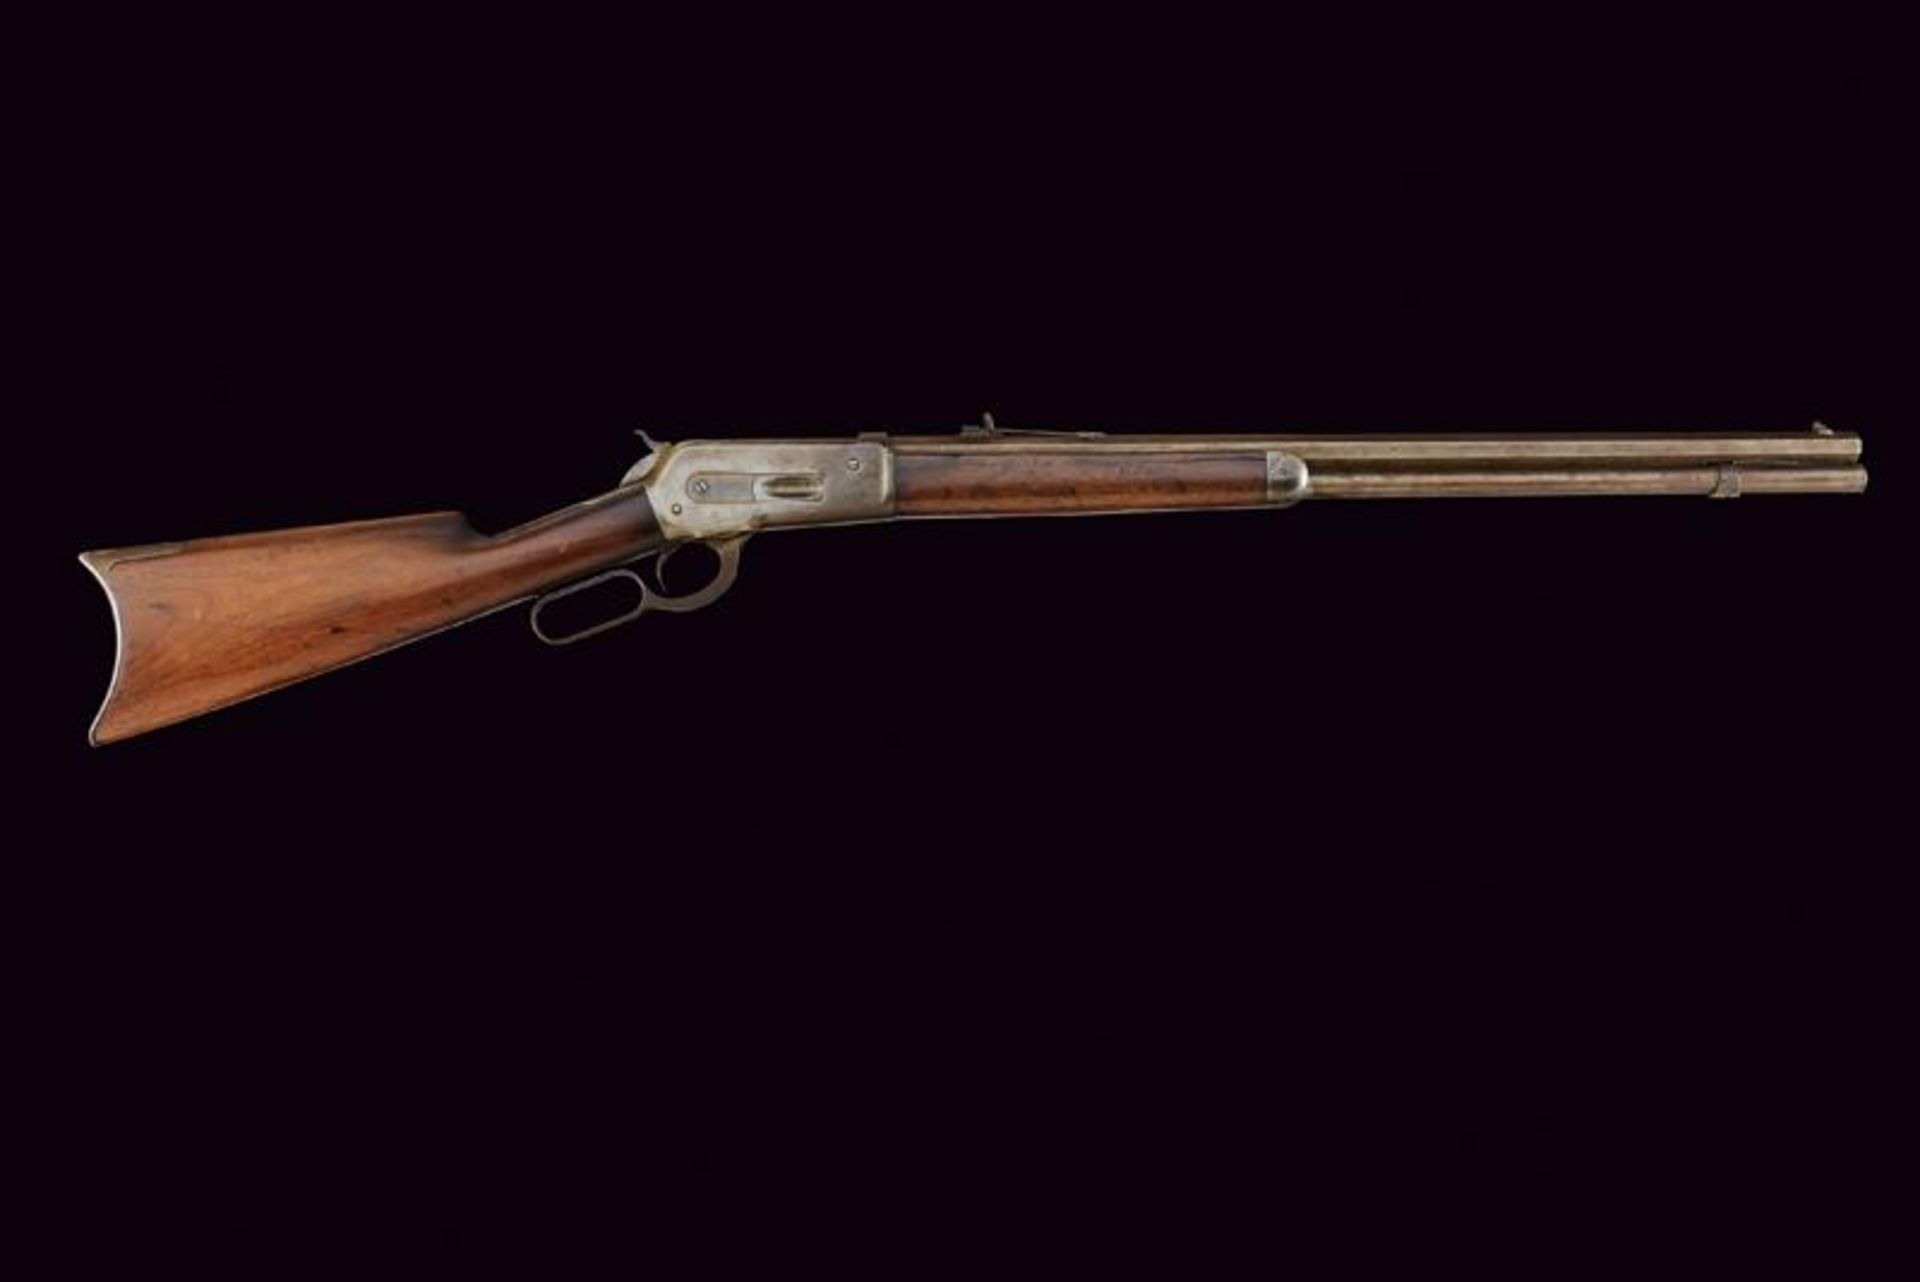 A Winchester Model 1886 Rifle - Image 11 of 11